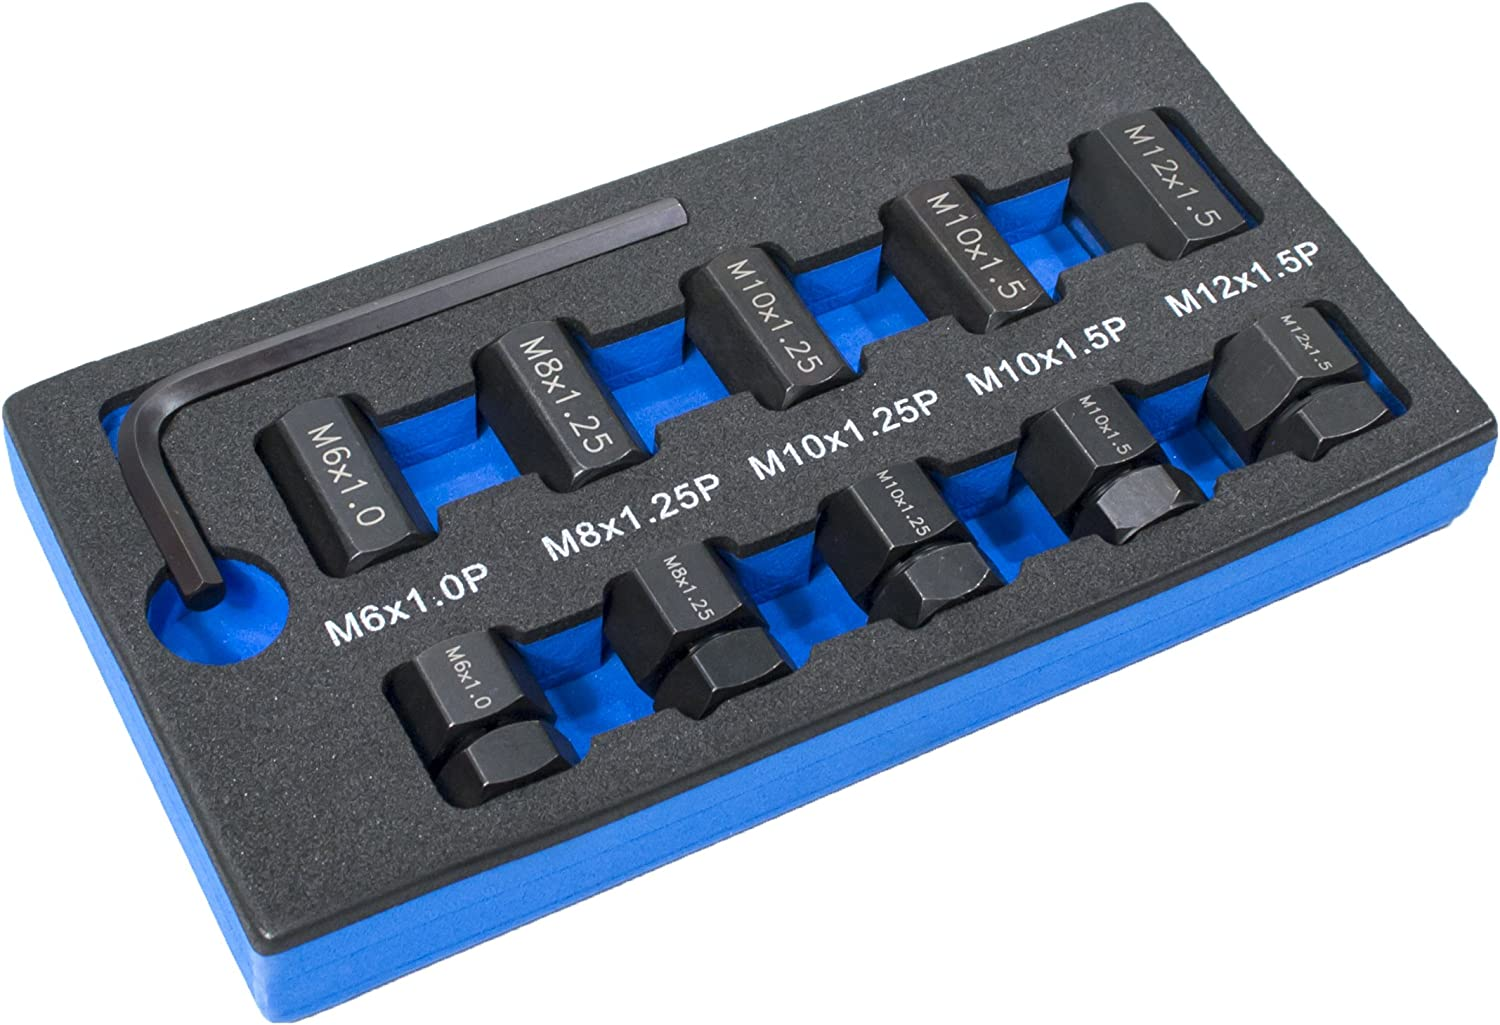 10 PC Metric Stud Remover and Installer Kit